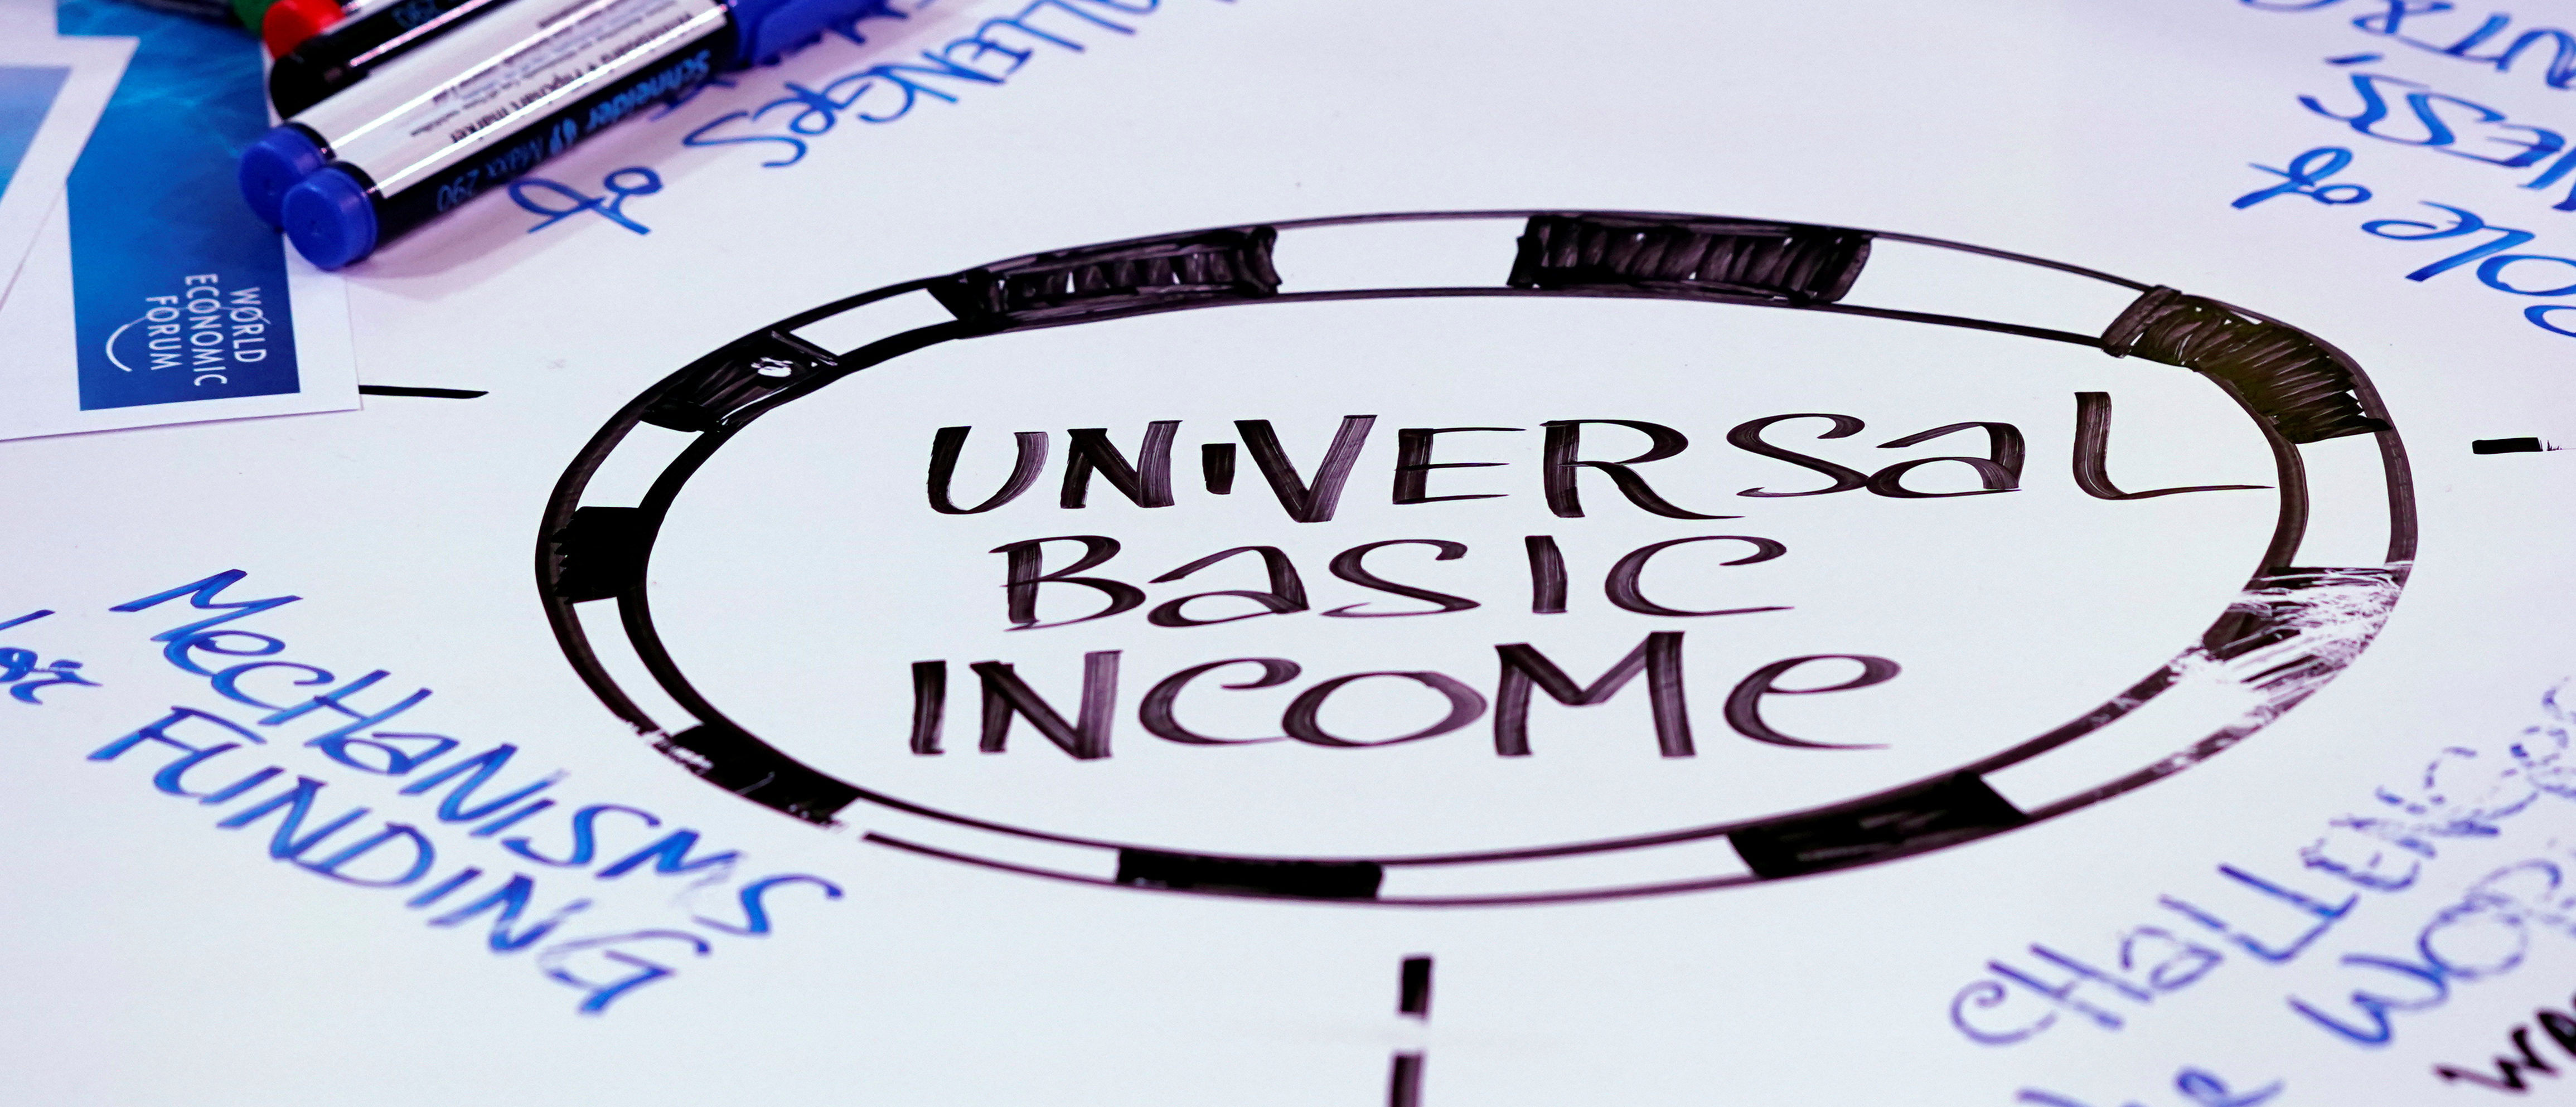 unemployment insurance and universal basic income Unemployed people in finland are already eligible for a benefits package  roughly equal in value to the basic income payment the difference.